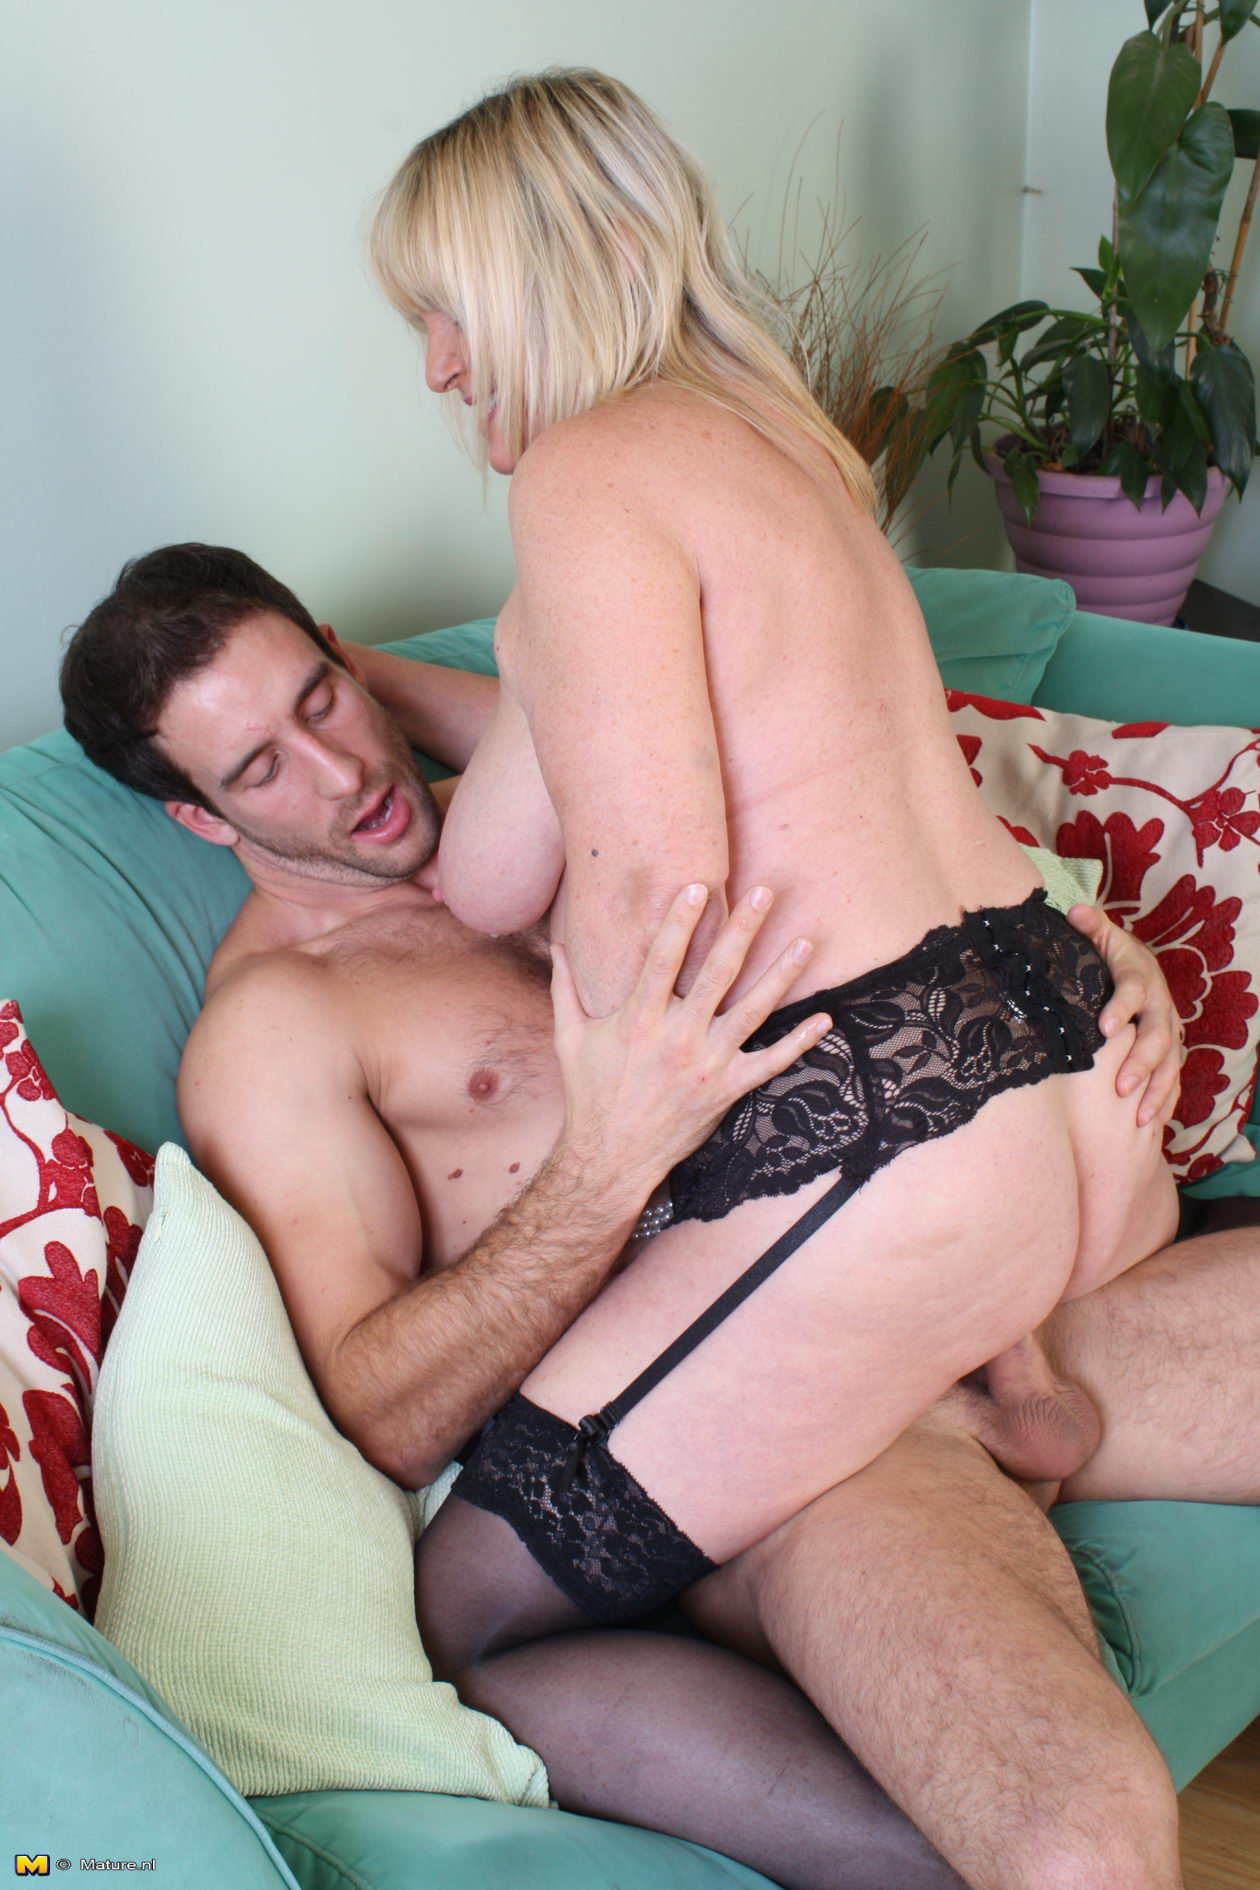 willing young girls open sex